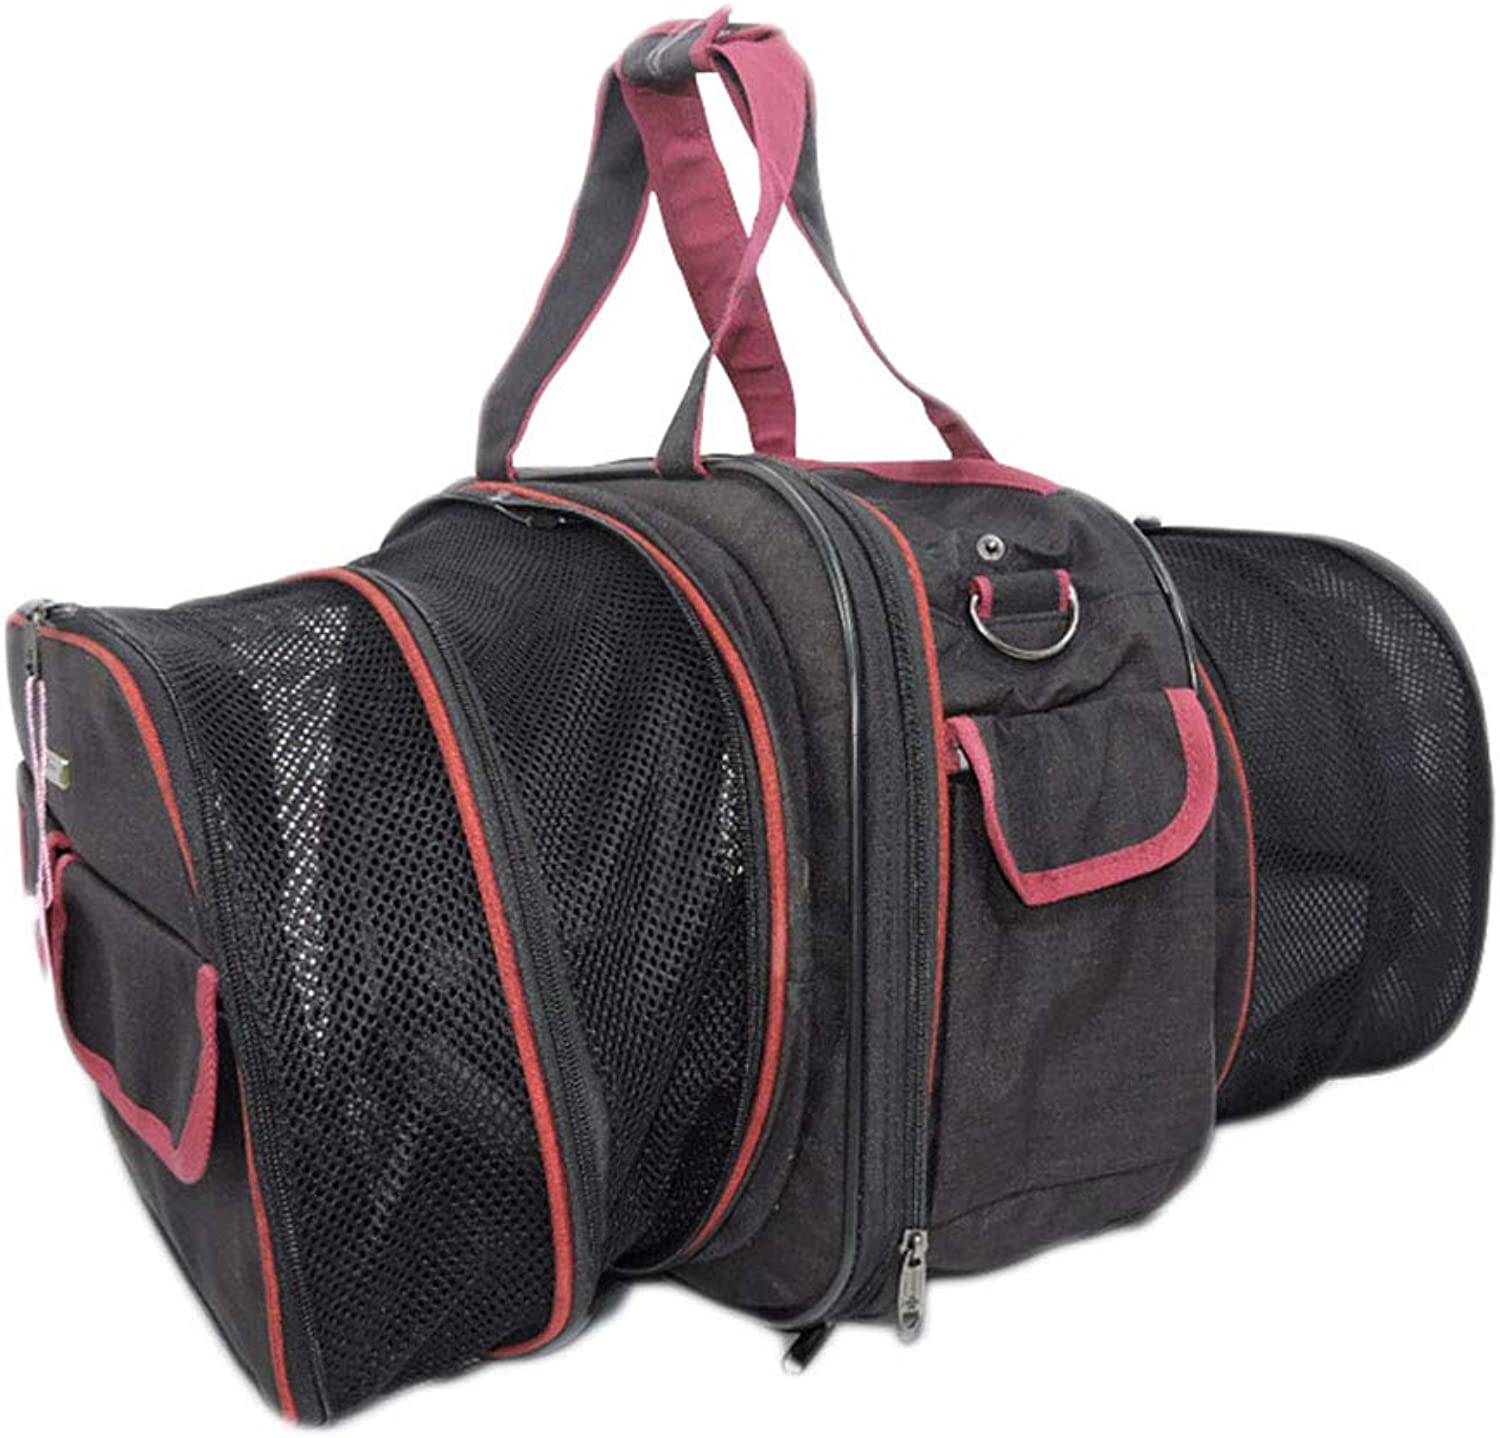 NINOMI Pet Bag Can Be Car Ventilated Small Dog With A Backpack To Retract The Cat Bag,Black